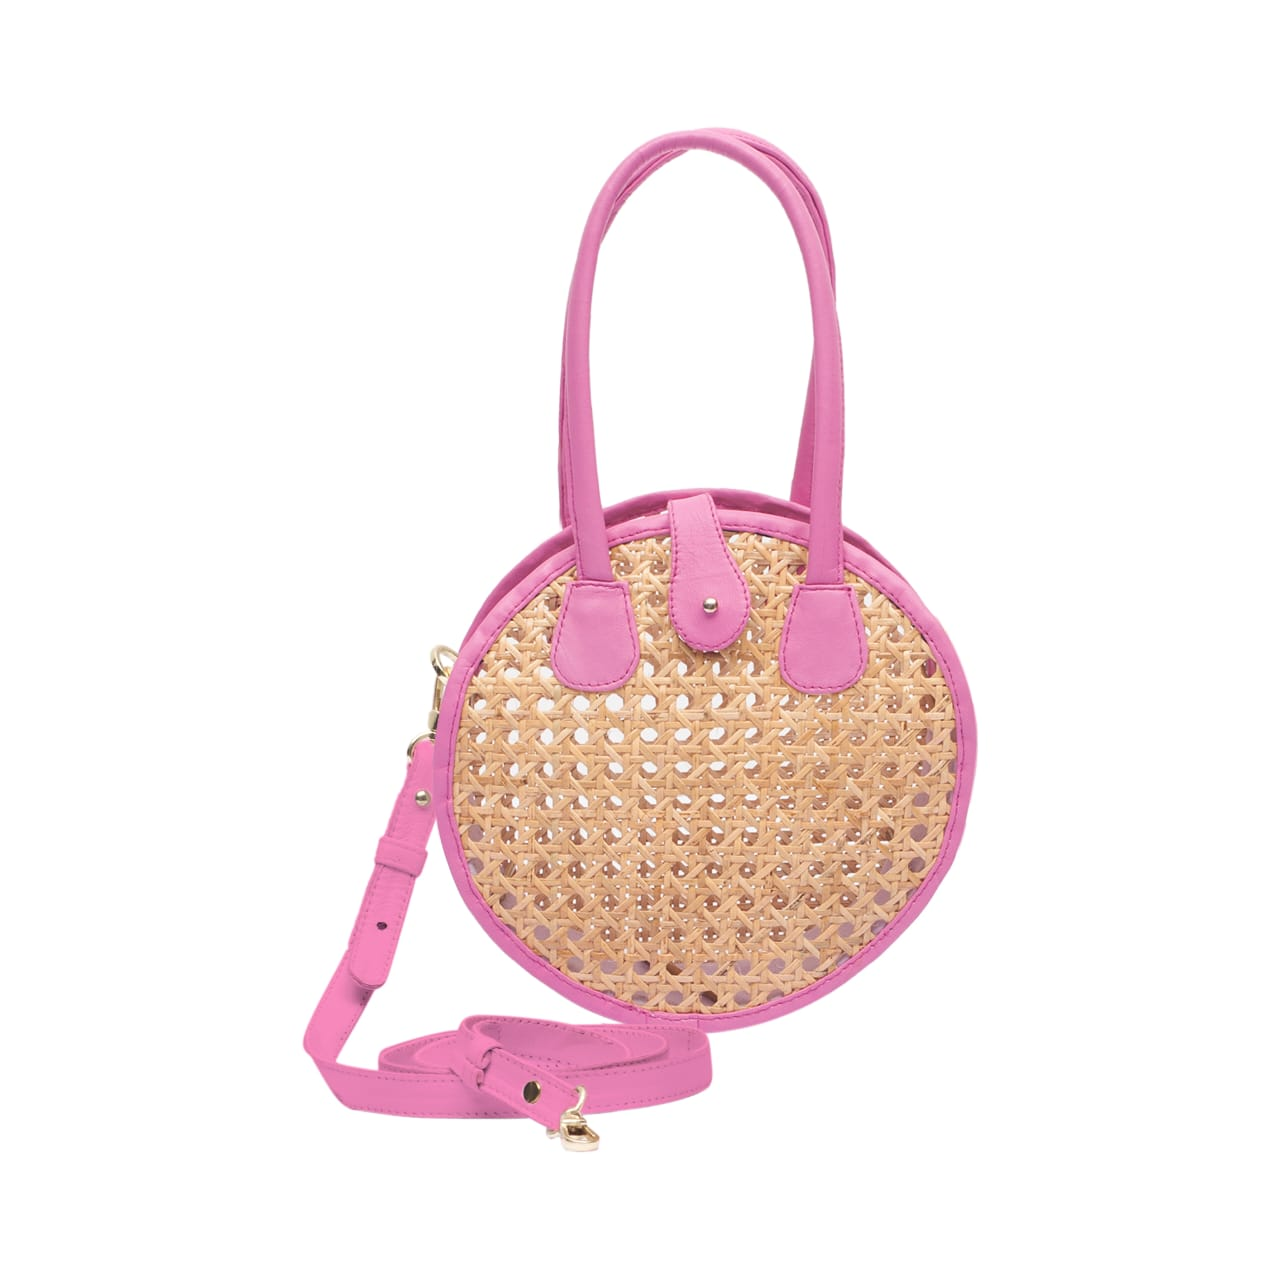 Circle Rattan & Hot Pink Leather Crossbody Bag